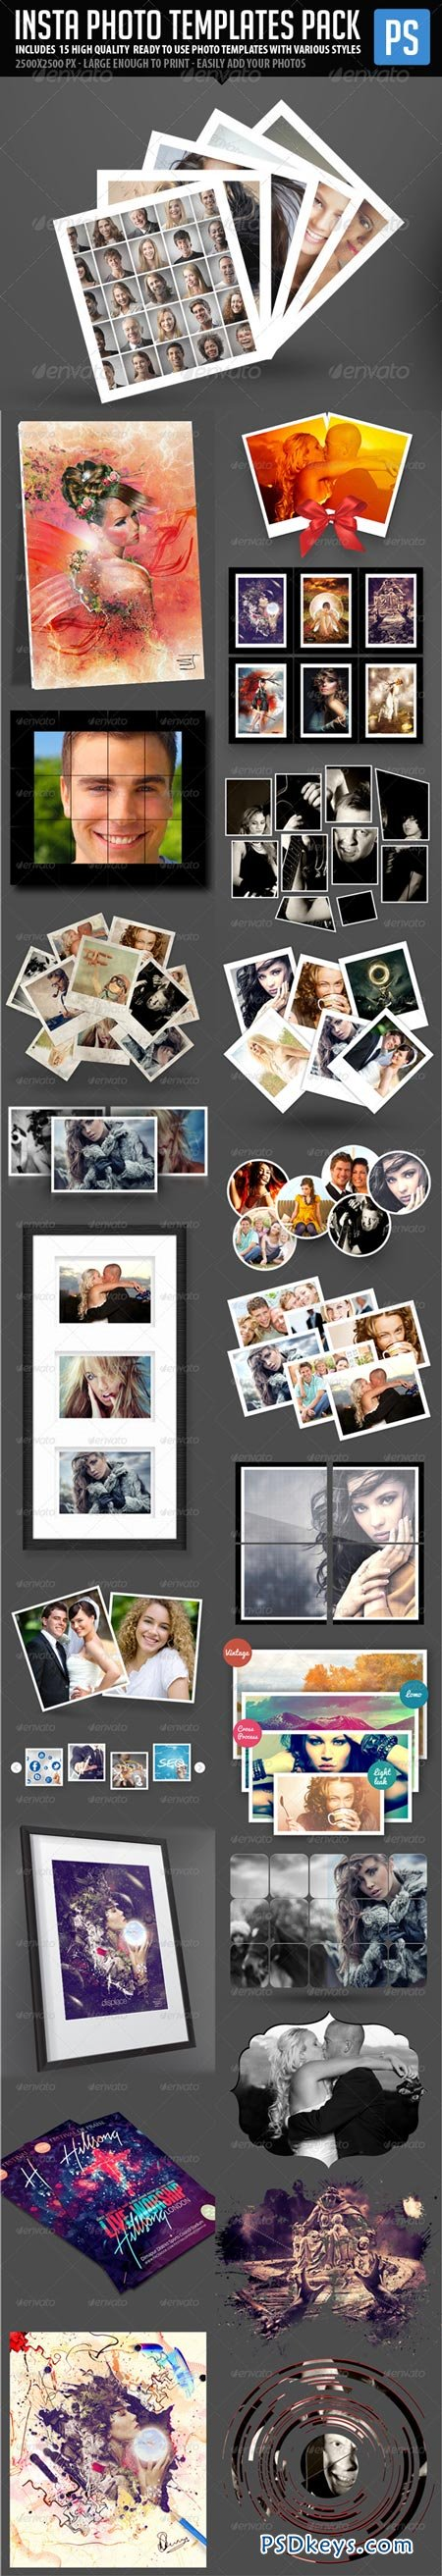 Insta Photo Templates Pack (23in1) 6063139